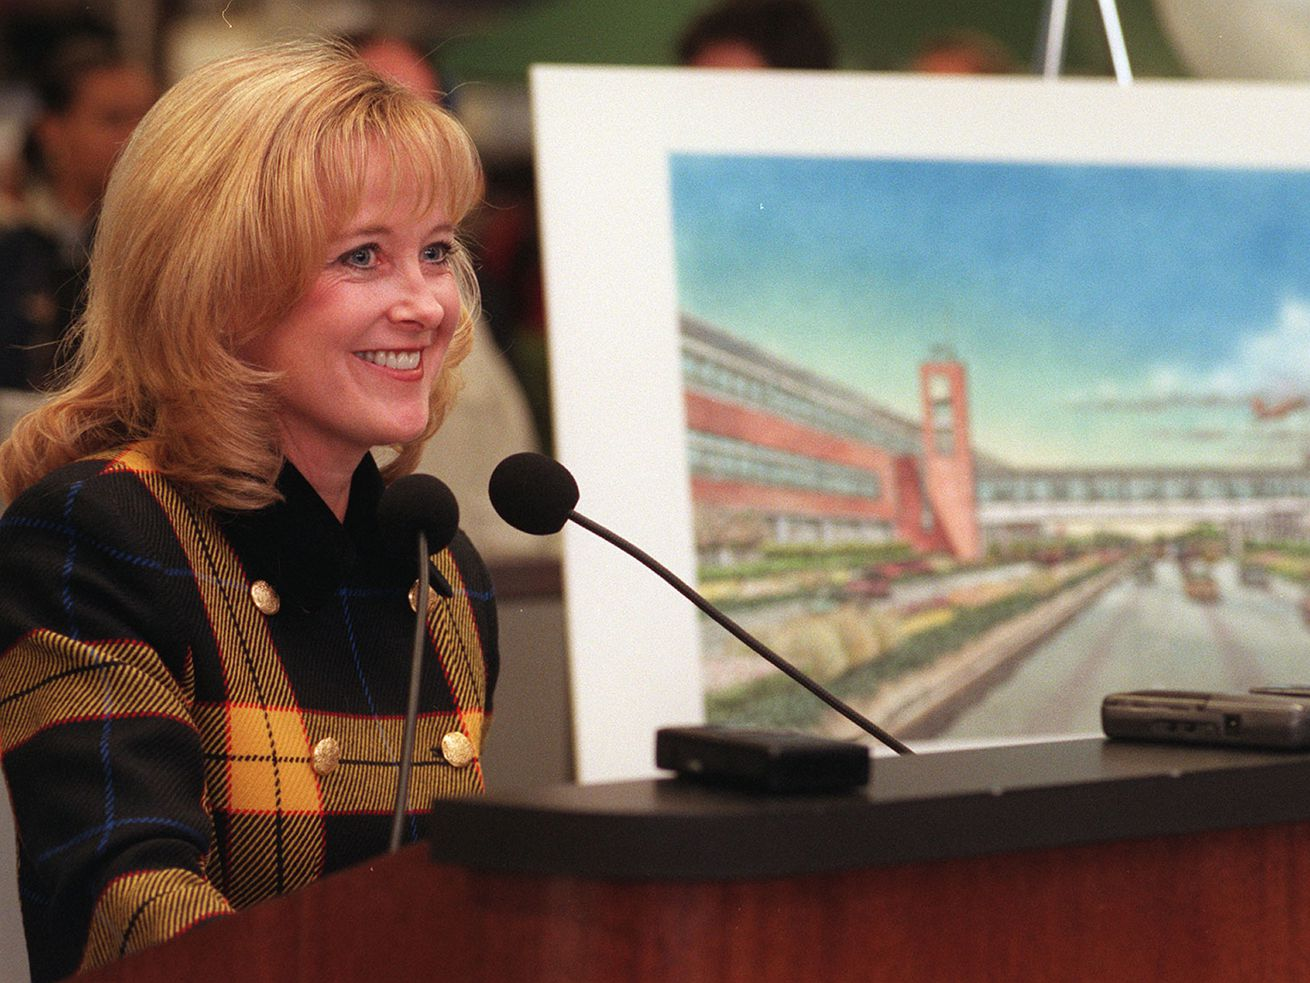 Mary Rose Loney, Chicago's first female aviation commissioner, dies suddenly at 68